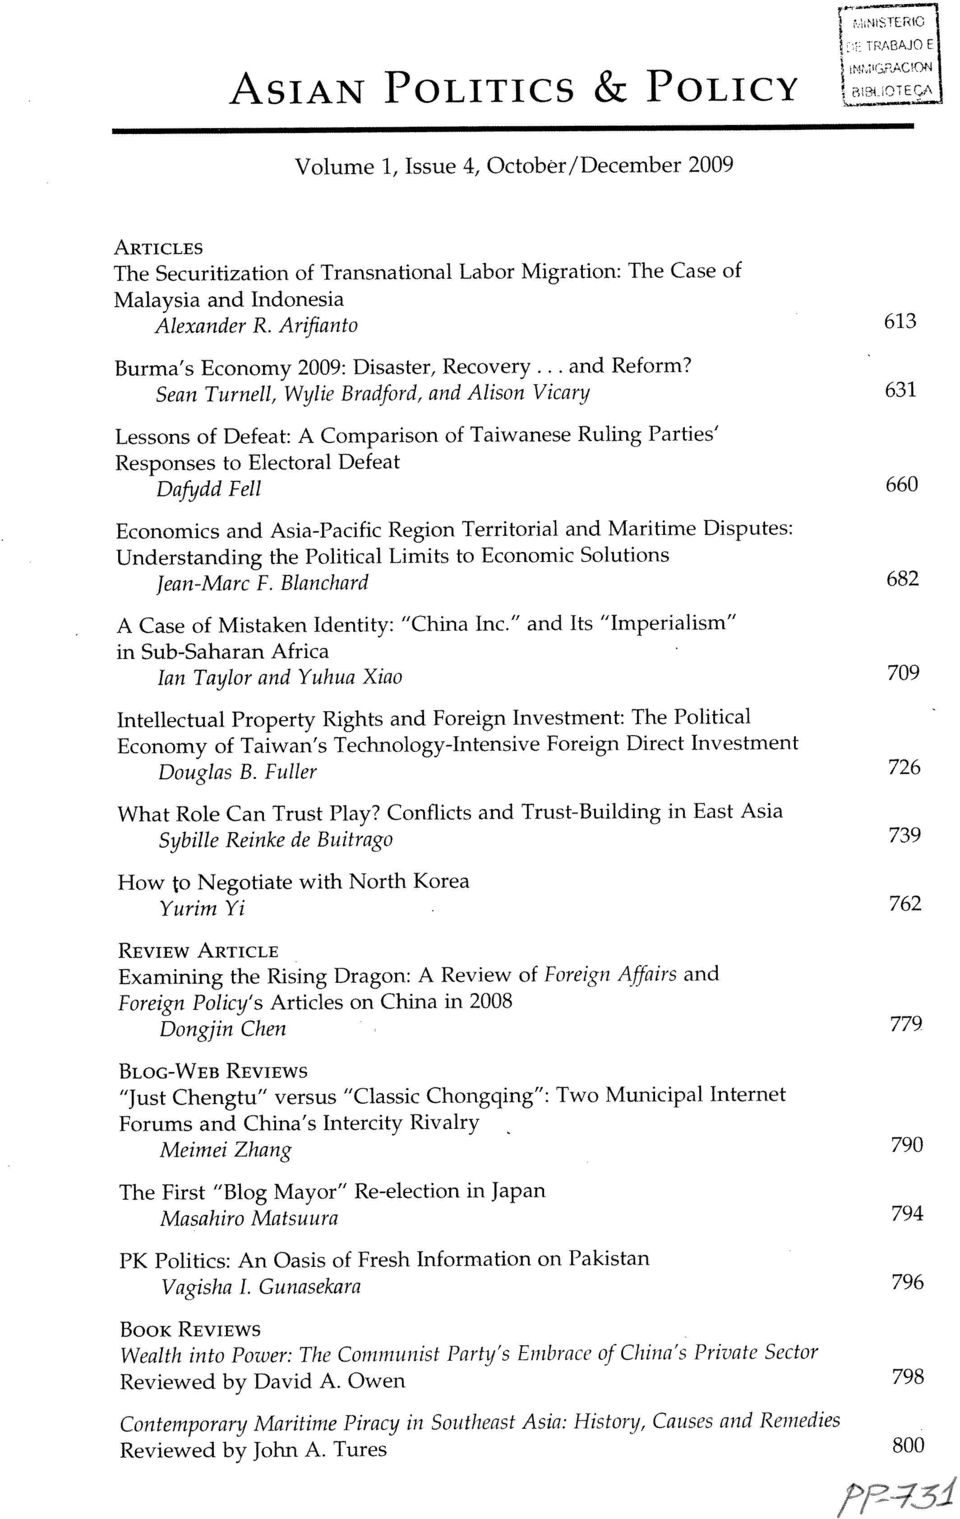 Political Limits to Economic Solutions Economics and Asia-Pacific Region Territorial and Maritime Disputes: A Case of Mistaken Identity: China Inc.